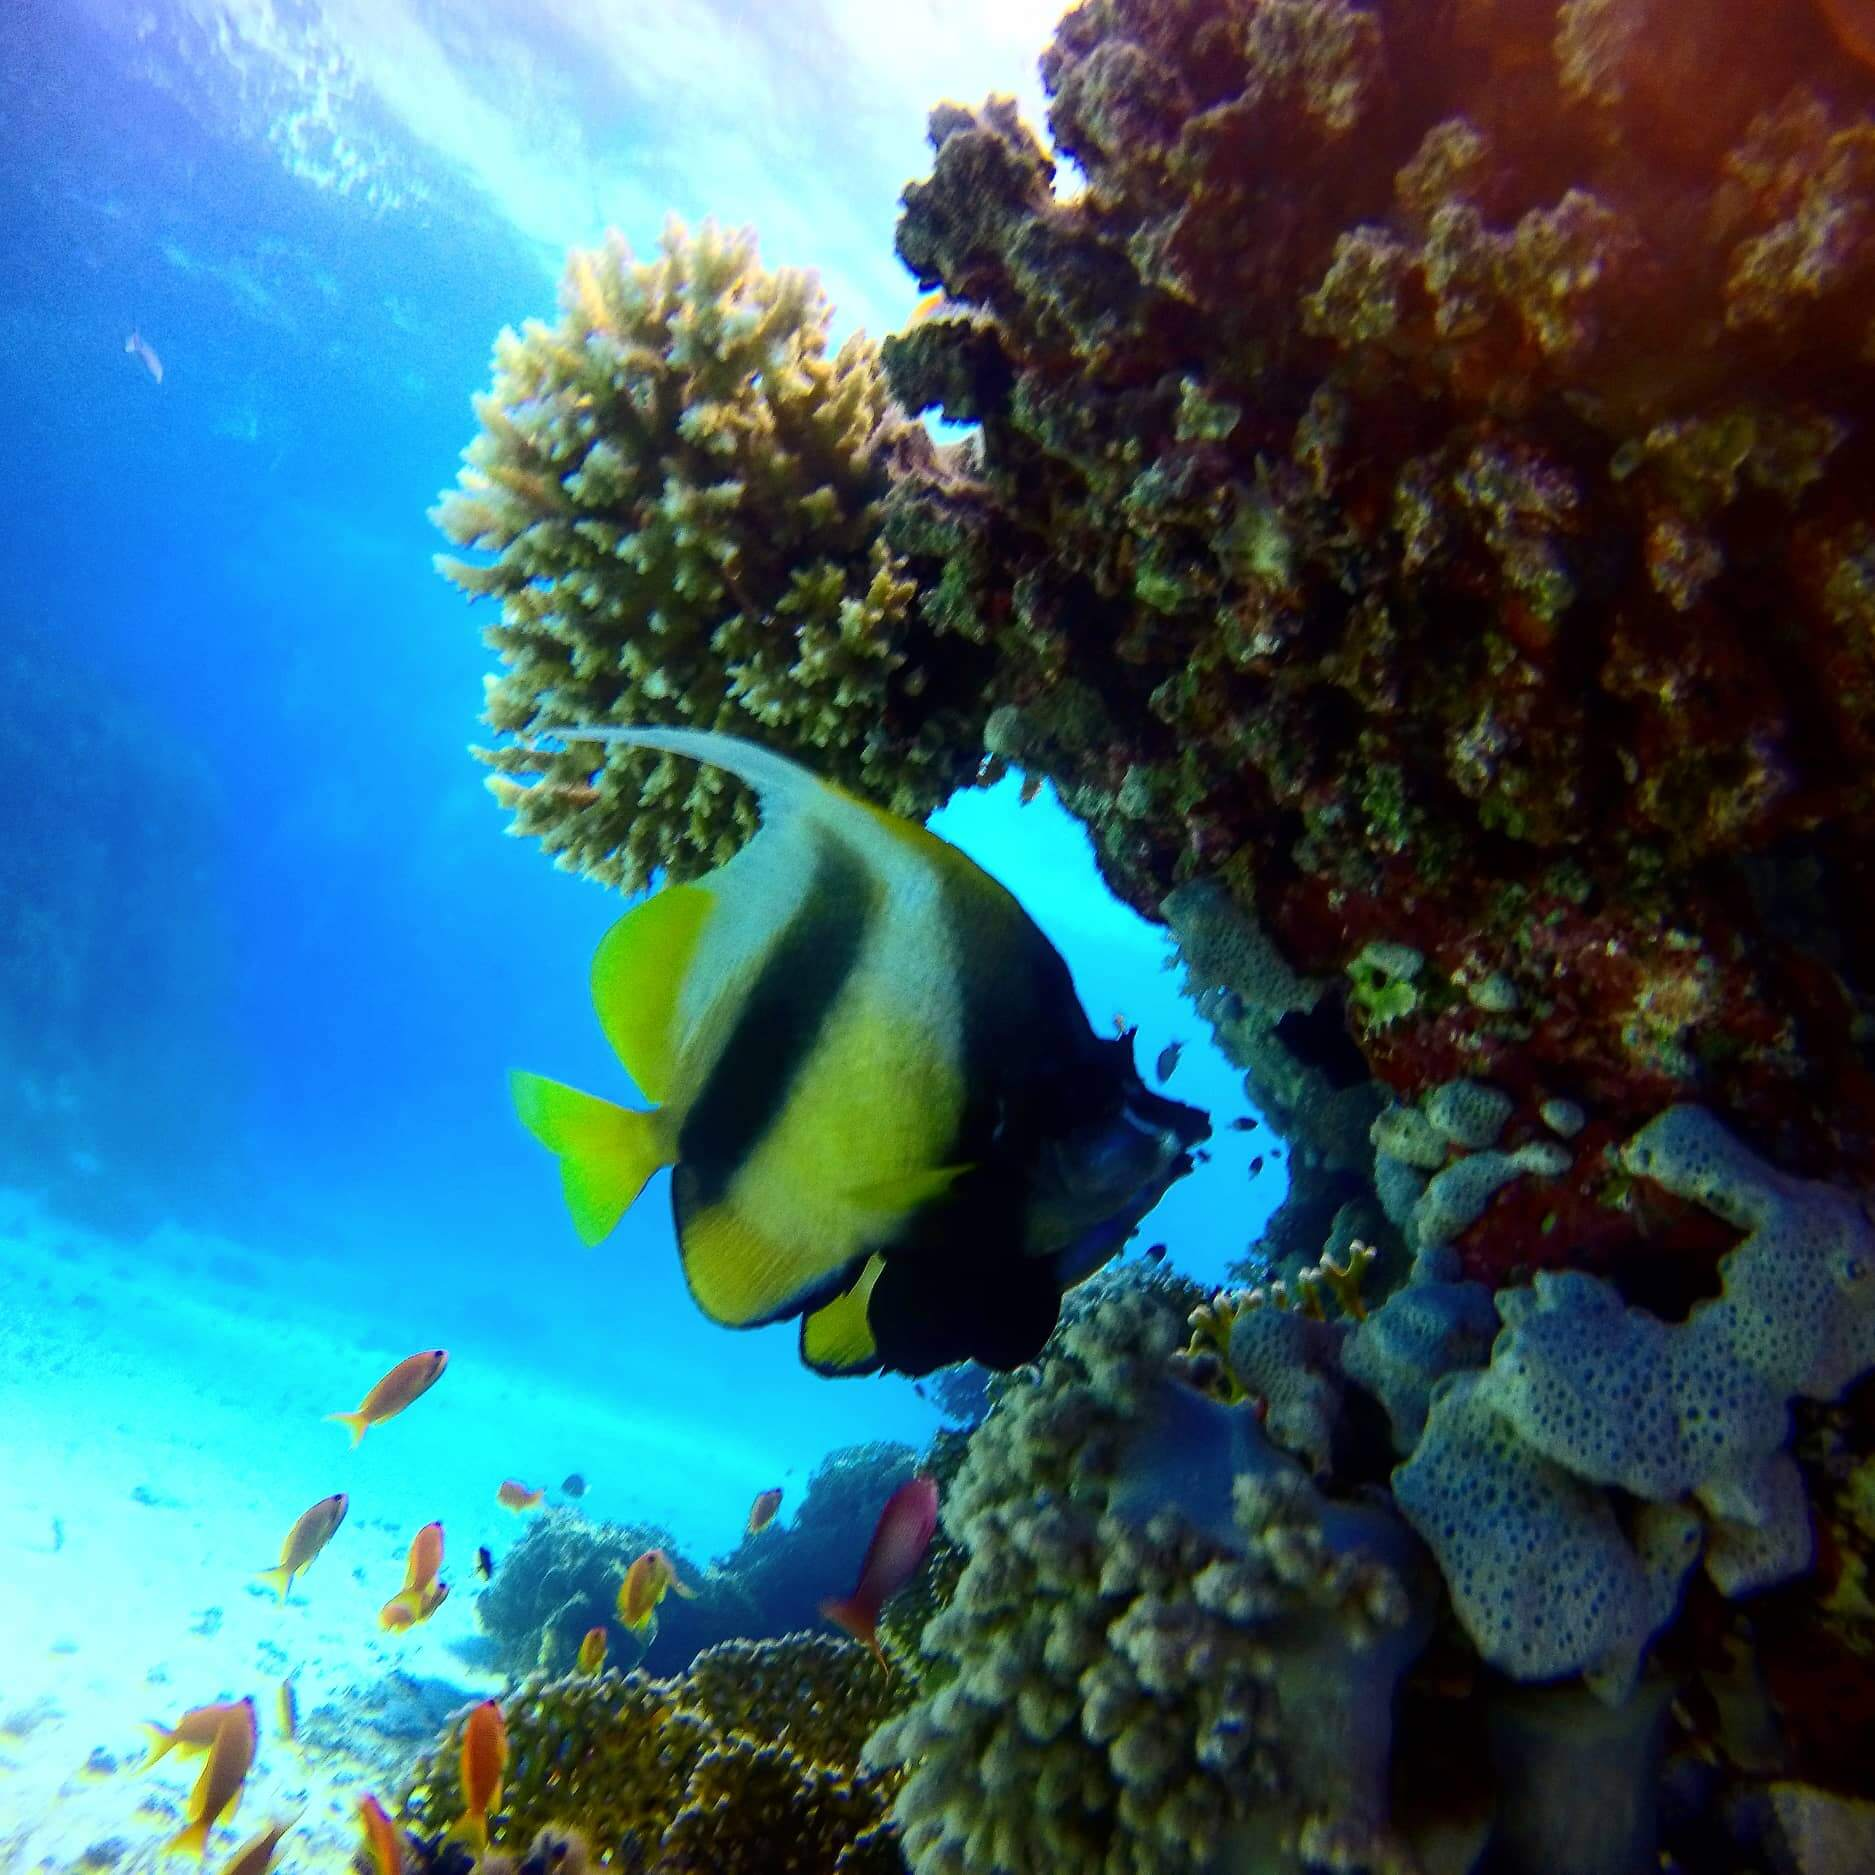 Egypt-REDSEA-Hurghada-Divepro-Academy-Diving-Center-ButterFly2-Fish